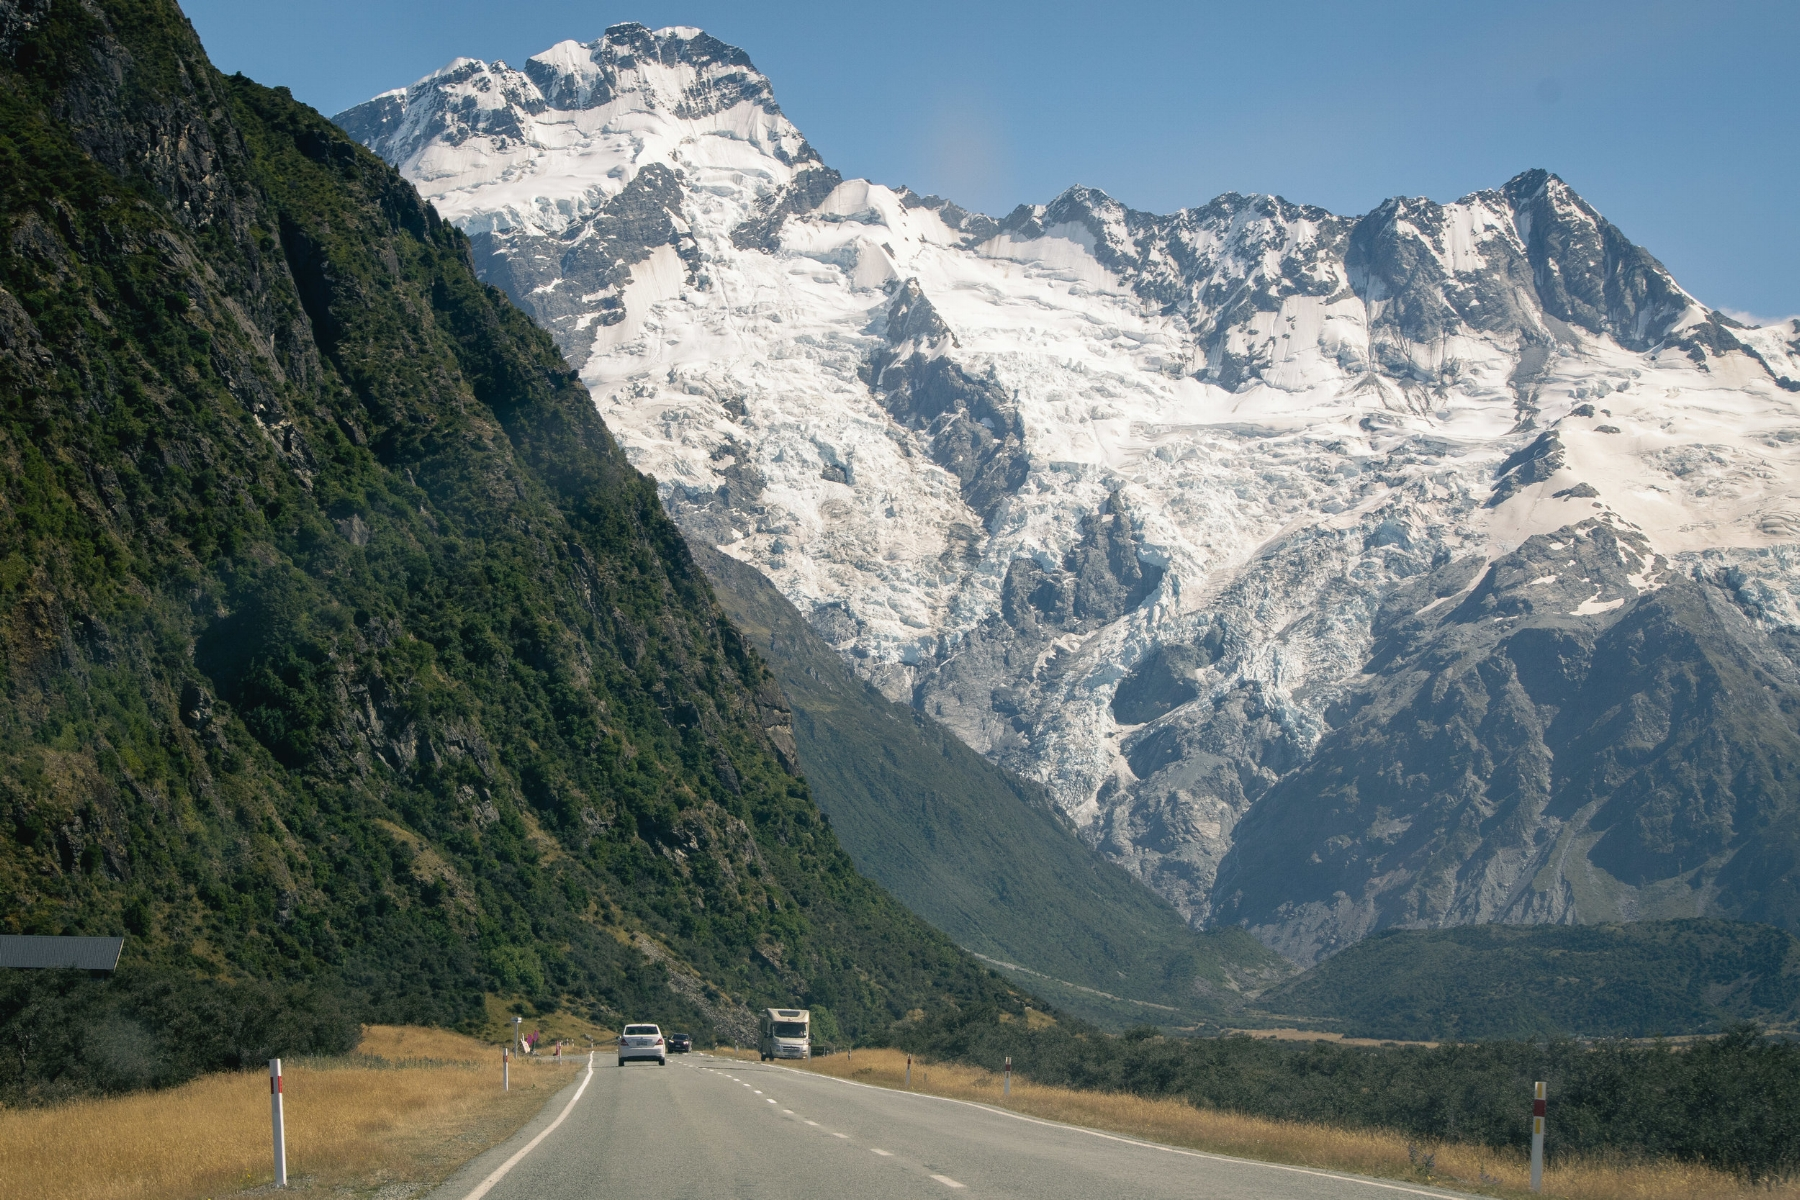 Entering Mount Cook National Park.